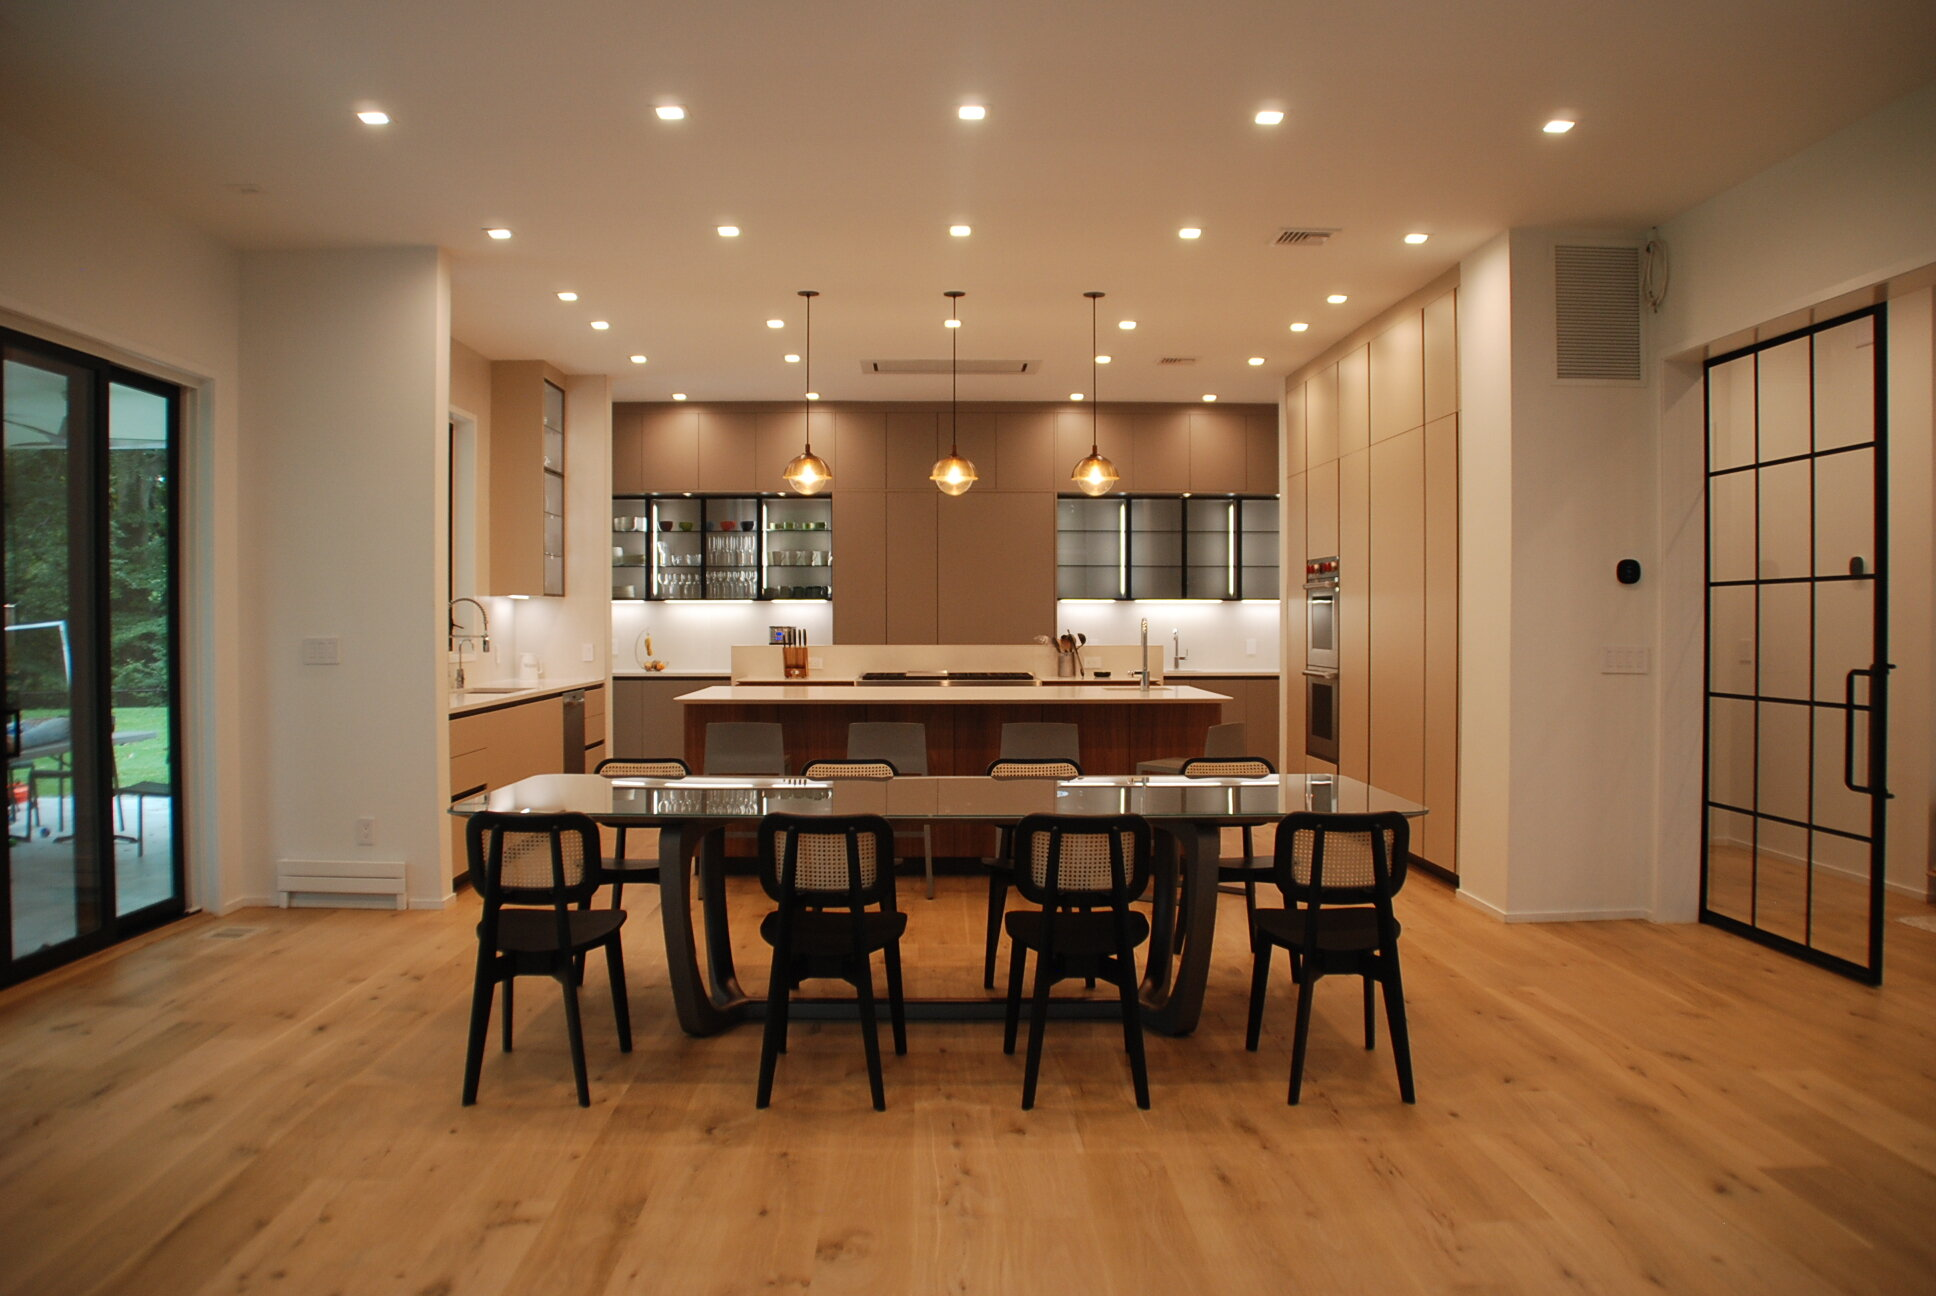 Kitchen Bath Home Design And Remodel Center Elite Kitchen Bath Express Contracting Serving Long Island Nyc Renowned Kitchen Bath Designers Expert Home Remodeling